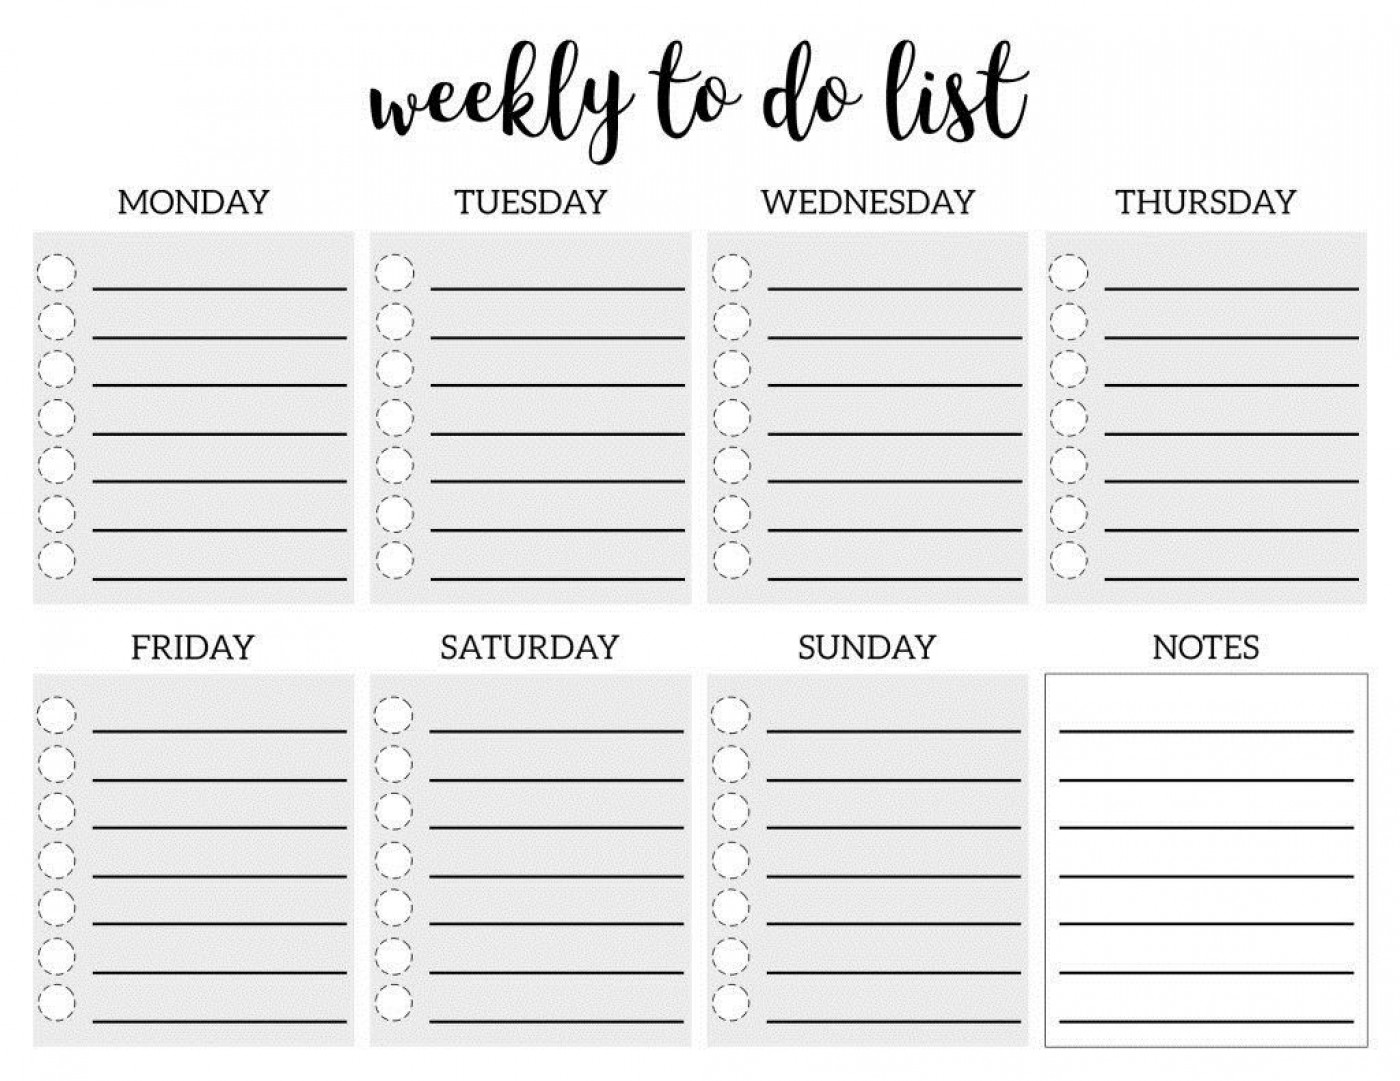 005 Remarkable To Do Checklist Template Idea 1400